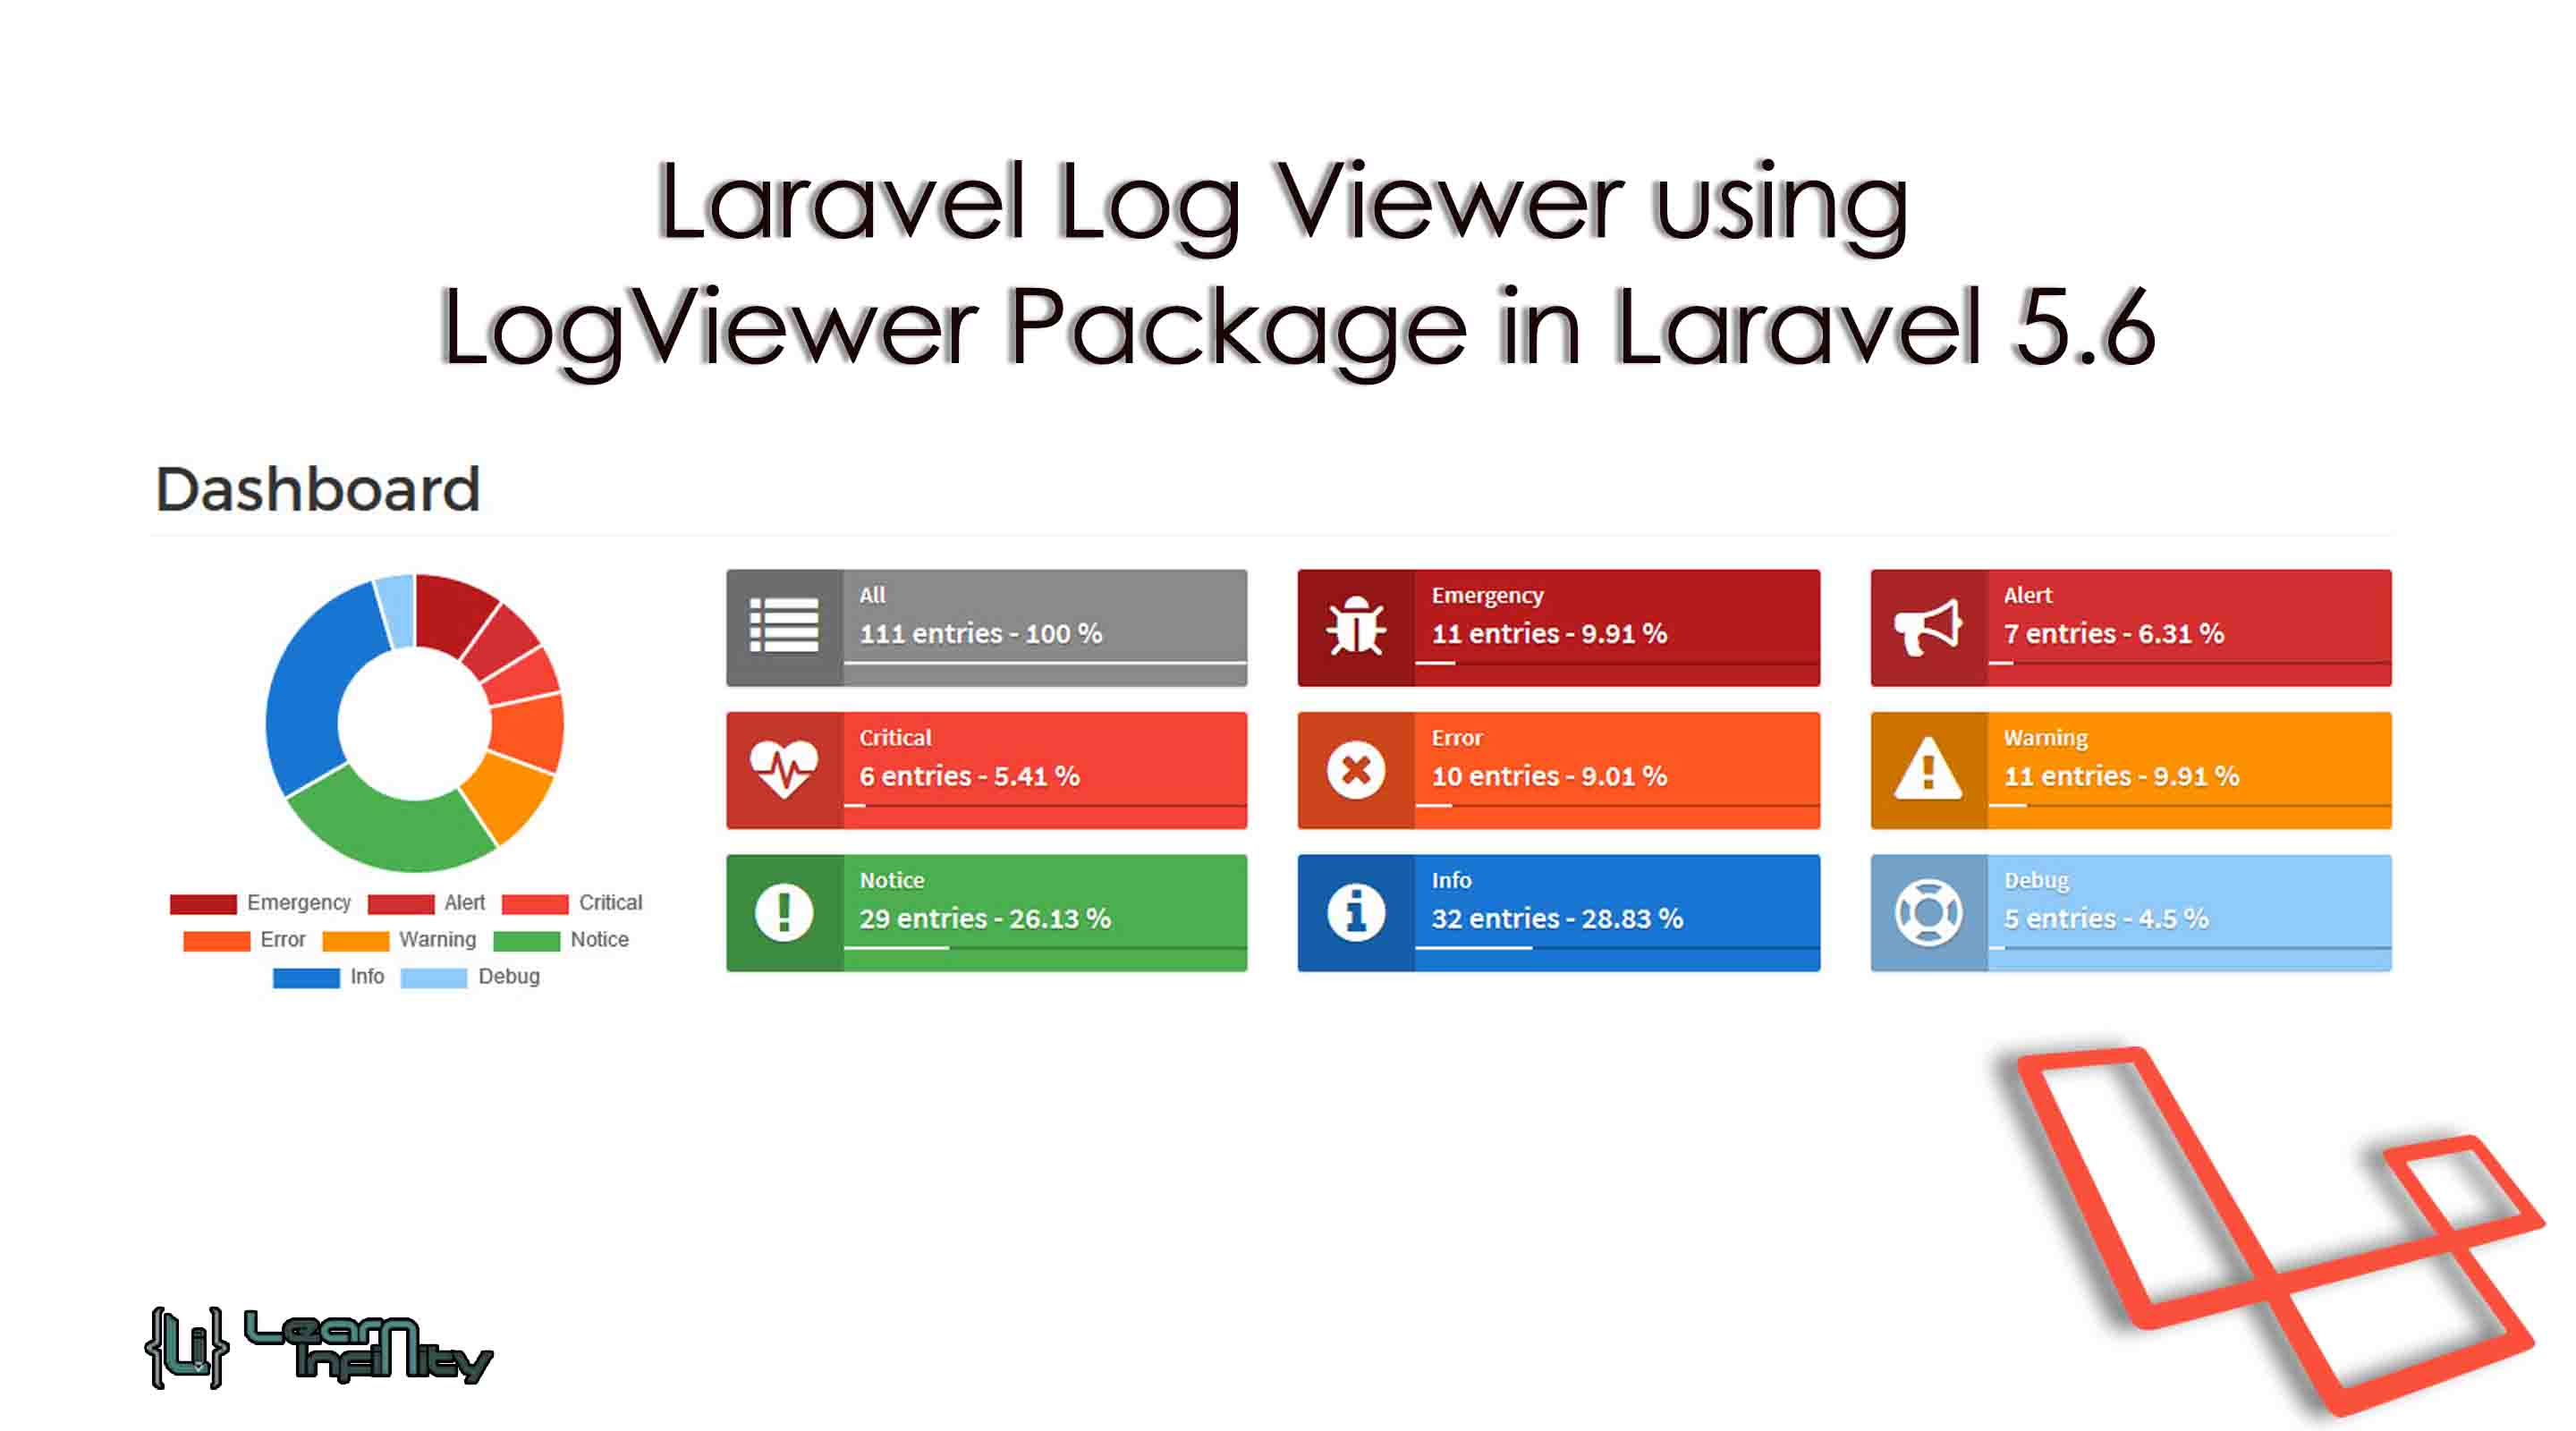 Laravel Log Viewer using LogViewer Package in Laravel 5.6